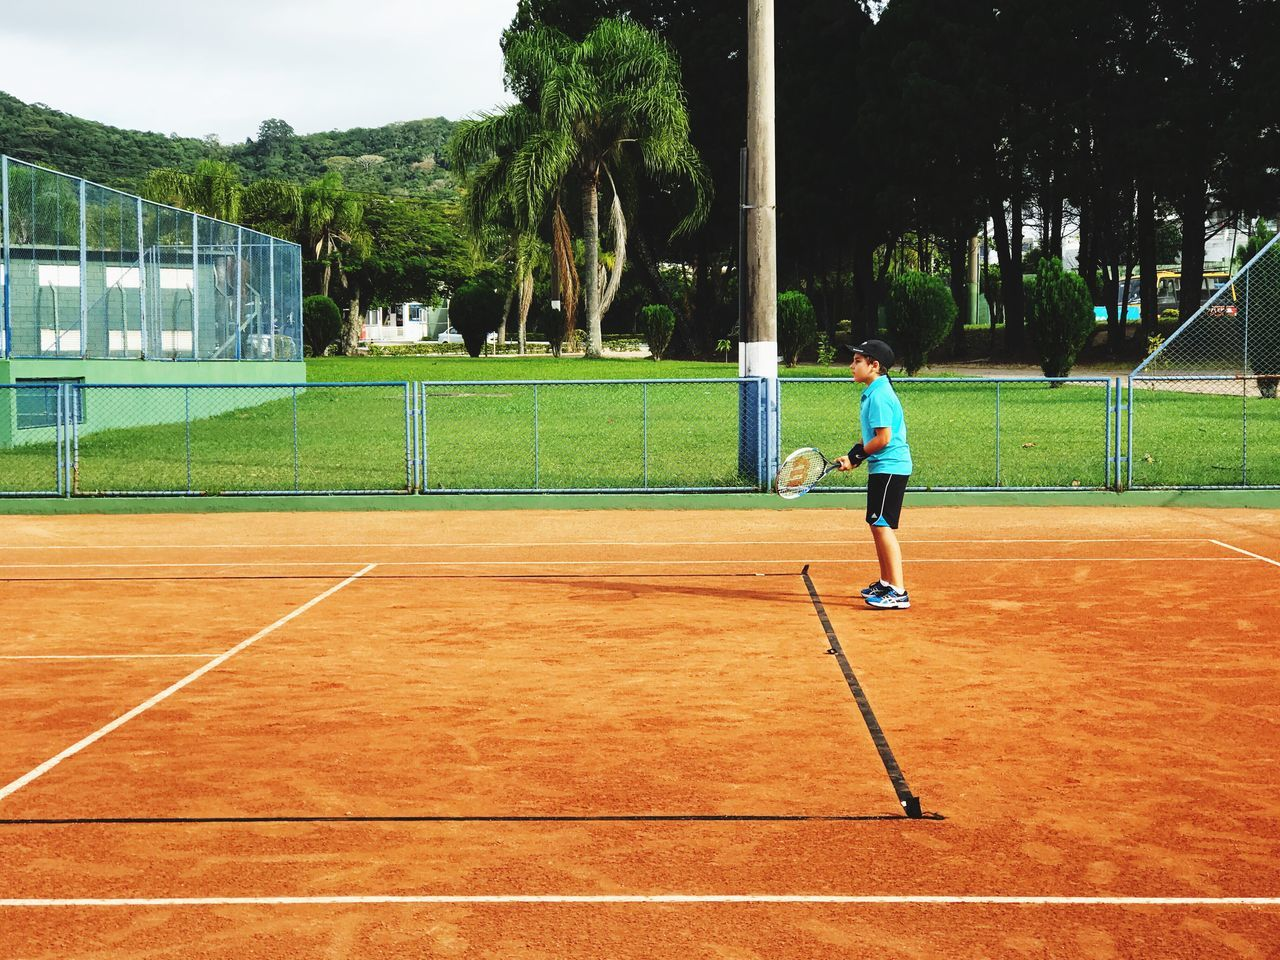 Sport Tennis Playing Court Full Length Lifestyles Leisure Activity Tree Tennis Racket Sportsman Practicing Activity Tennis Ball Sports Clothing One Person Baseball - Sport Healthy Lifestyle Sports Venue Ball Exercising